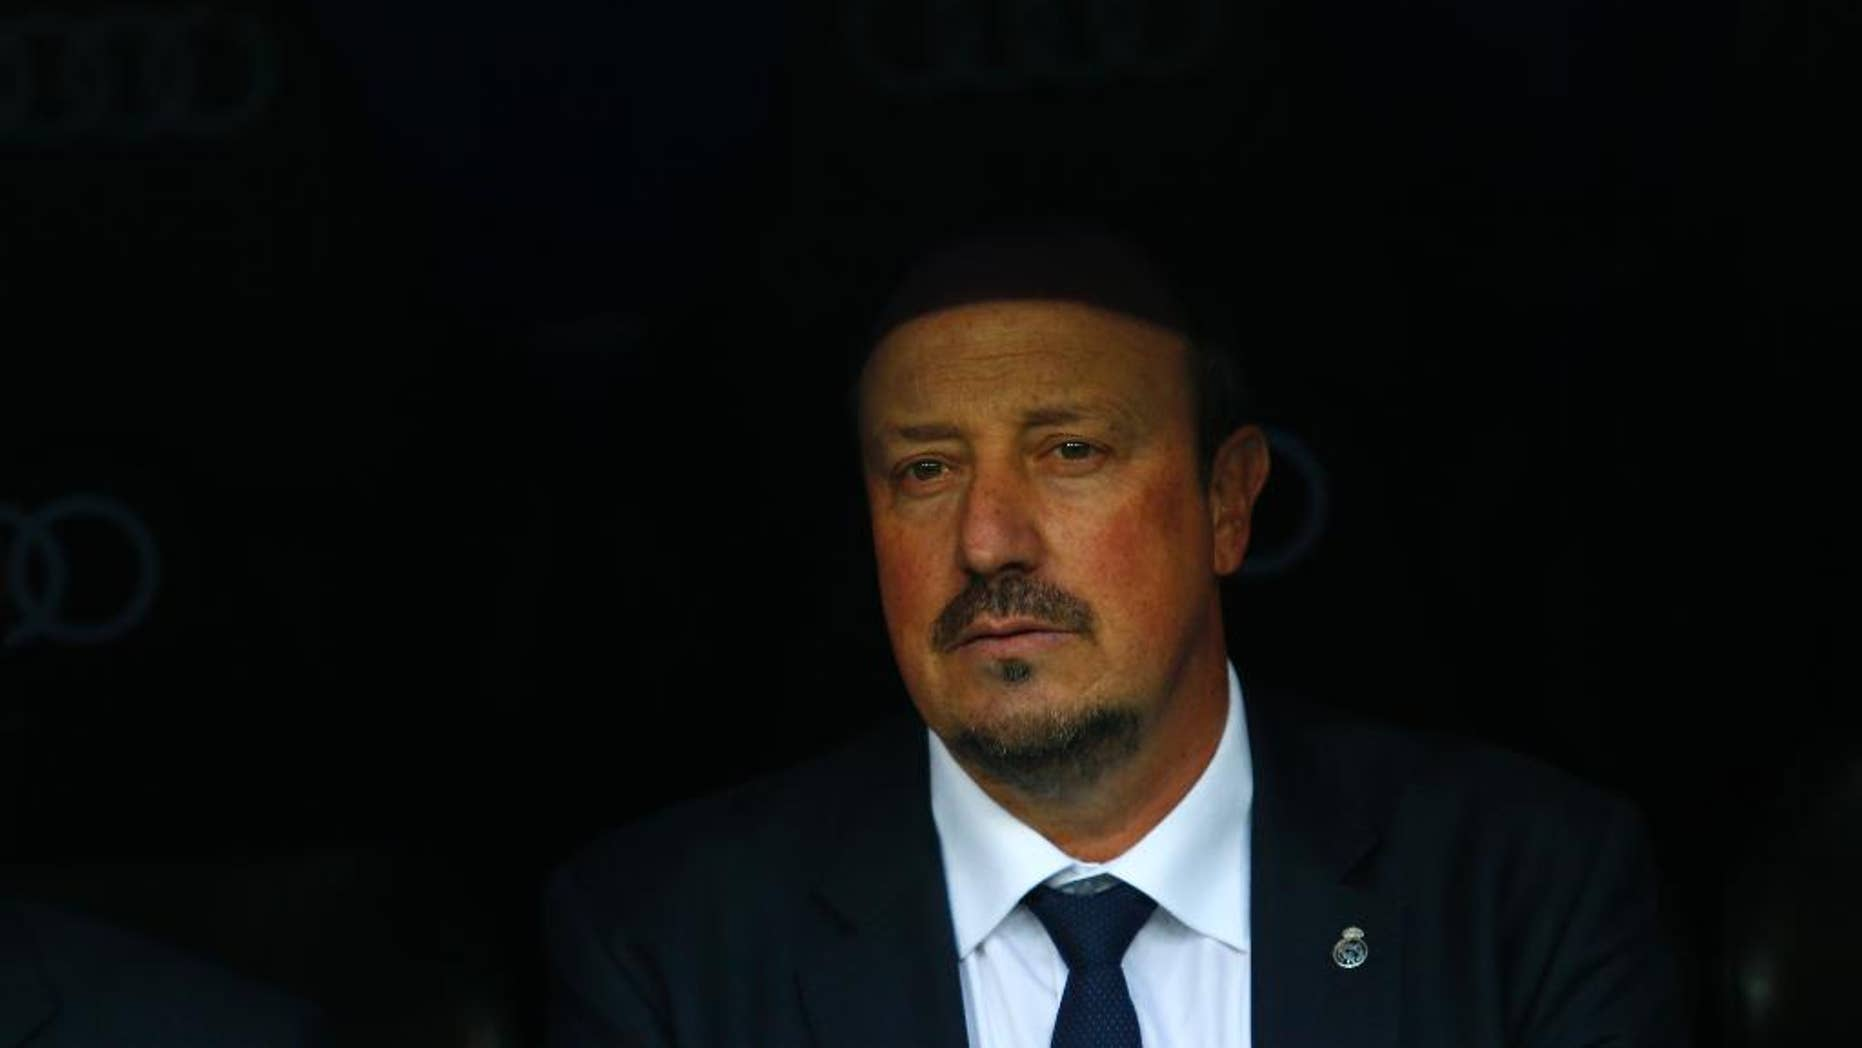 Real Madrid's head coach Rafa Benitez waits for the start of the game during the Spanish La Liga soccer match between Real Madrid and Getafe at the Santiago Bernabeu stadium in Madrid, Saturday, Dec. 5, 2015. Real Madrid won 4-1. (AP Photo/Francisco Seco)